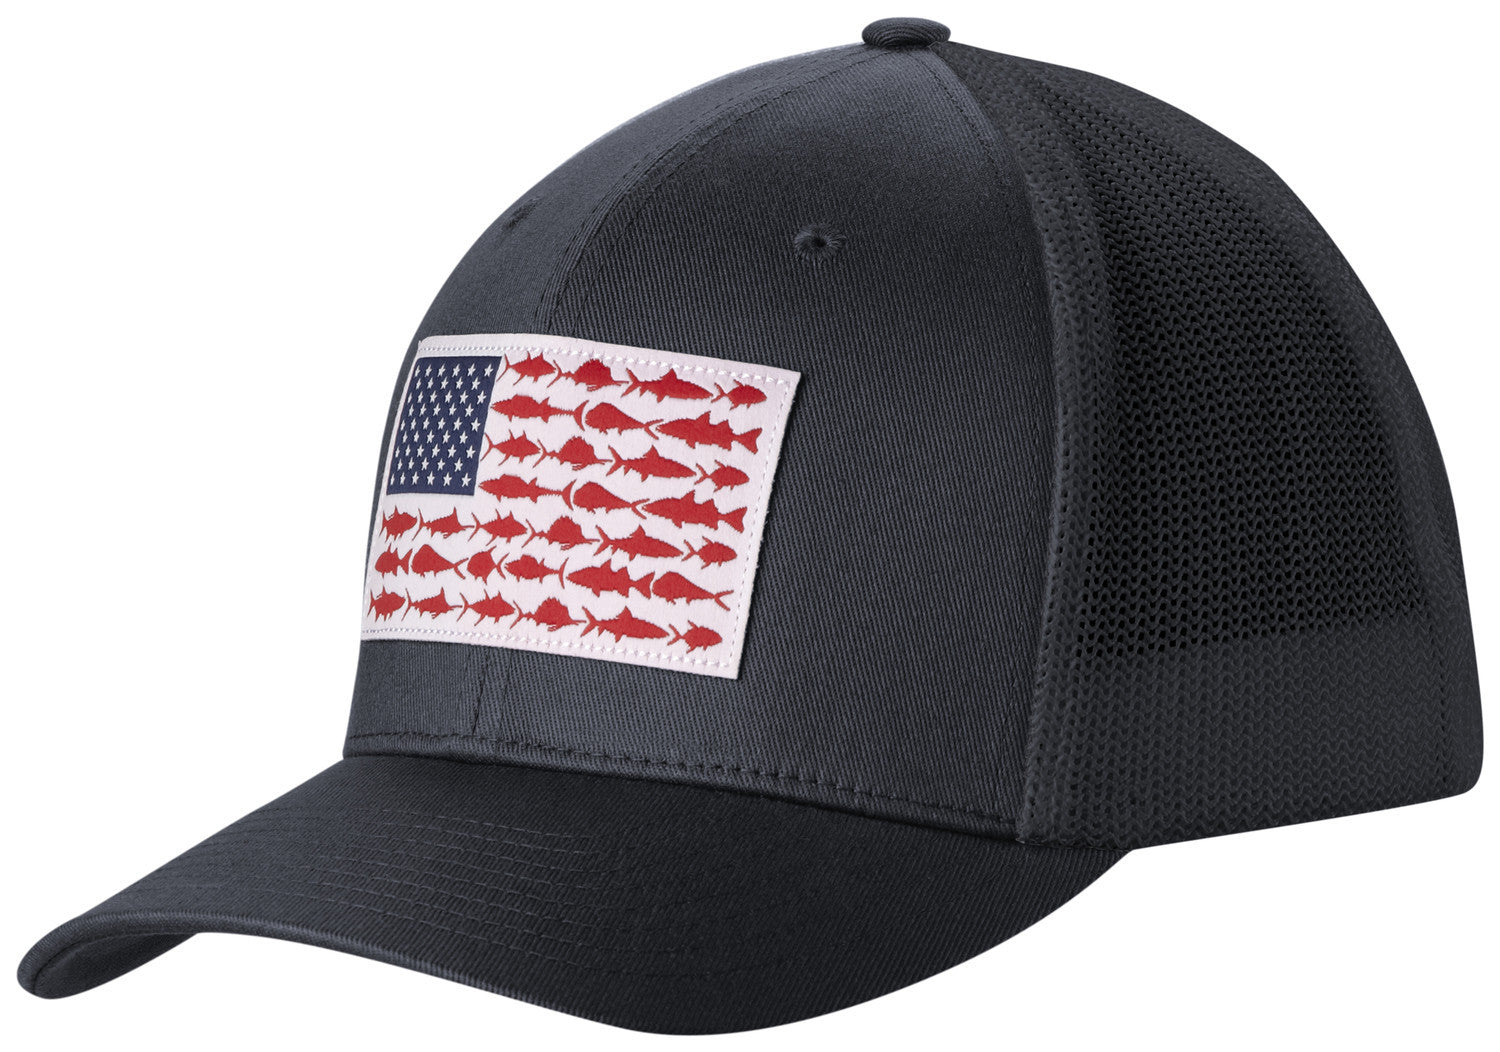 adcde22594f40 PFG MESH™ BALL CAP COLLEGIATE NAVY   FISH FLAG Hats Columbia - Hook 1  Outfitters